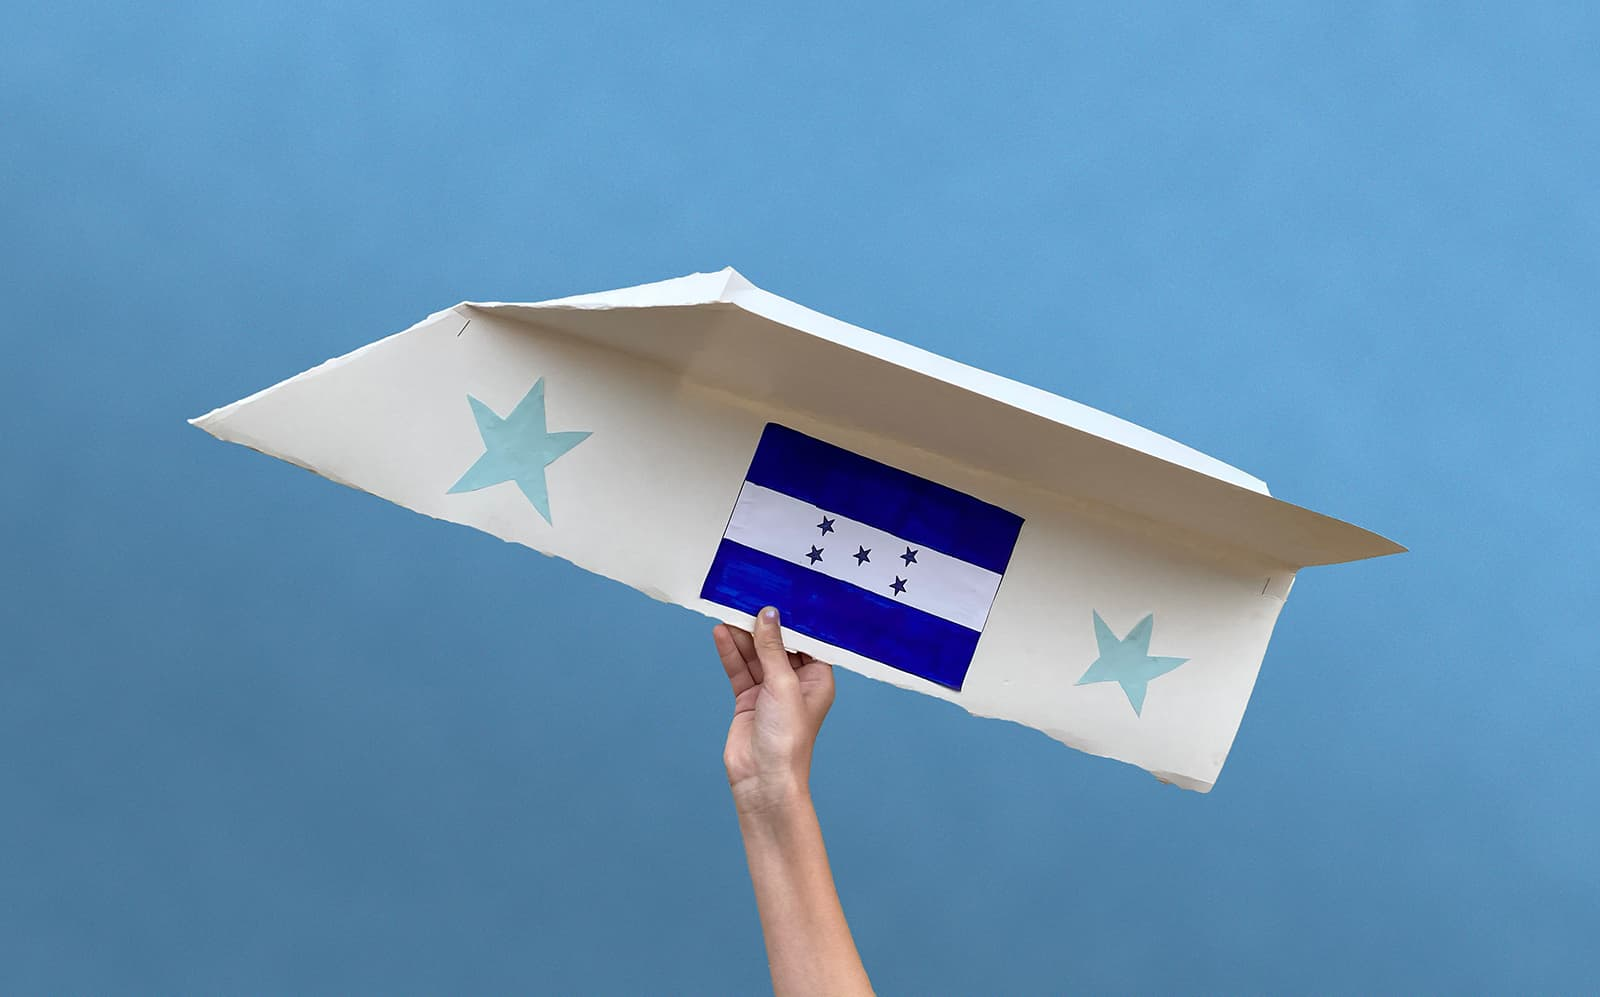 Fun family activities at home: Large paper airplane decorated with Honduran flag